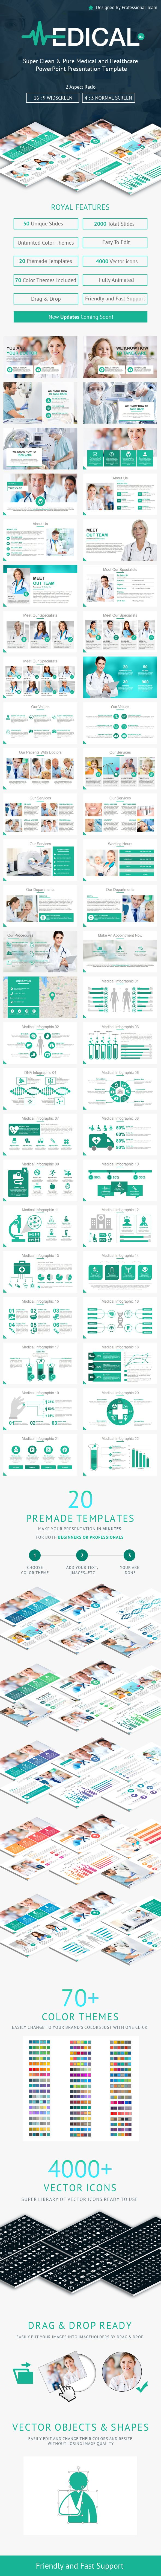 Medical and Healthcare PowerPoint Presentation Template. Download here: http://graphicriver.net/item/medical-and-healthcare-powerpoint-presentation-template/15301636?ref=ksioks